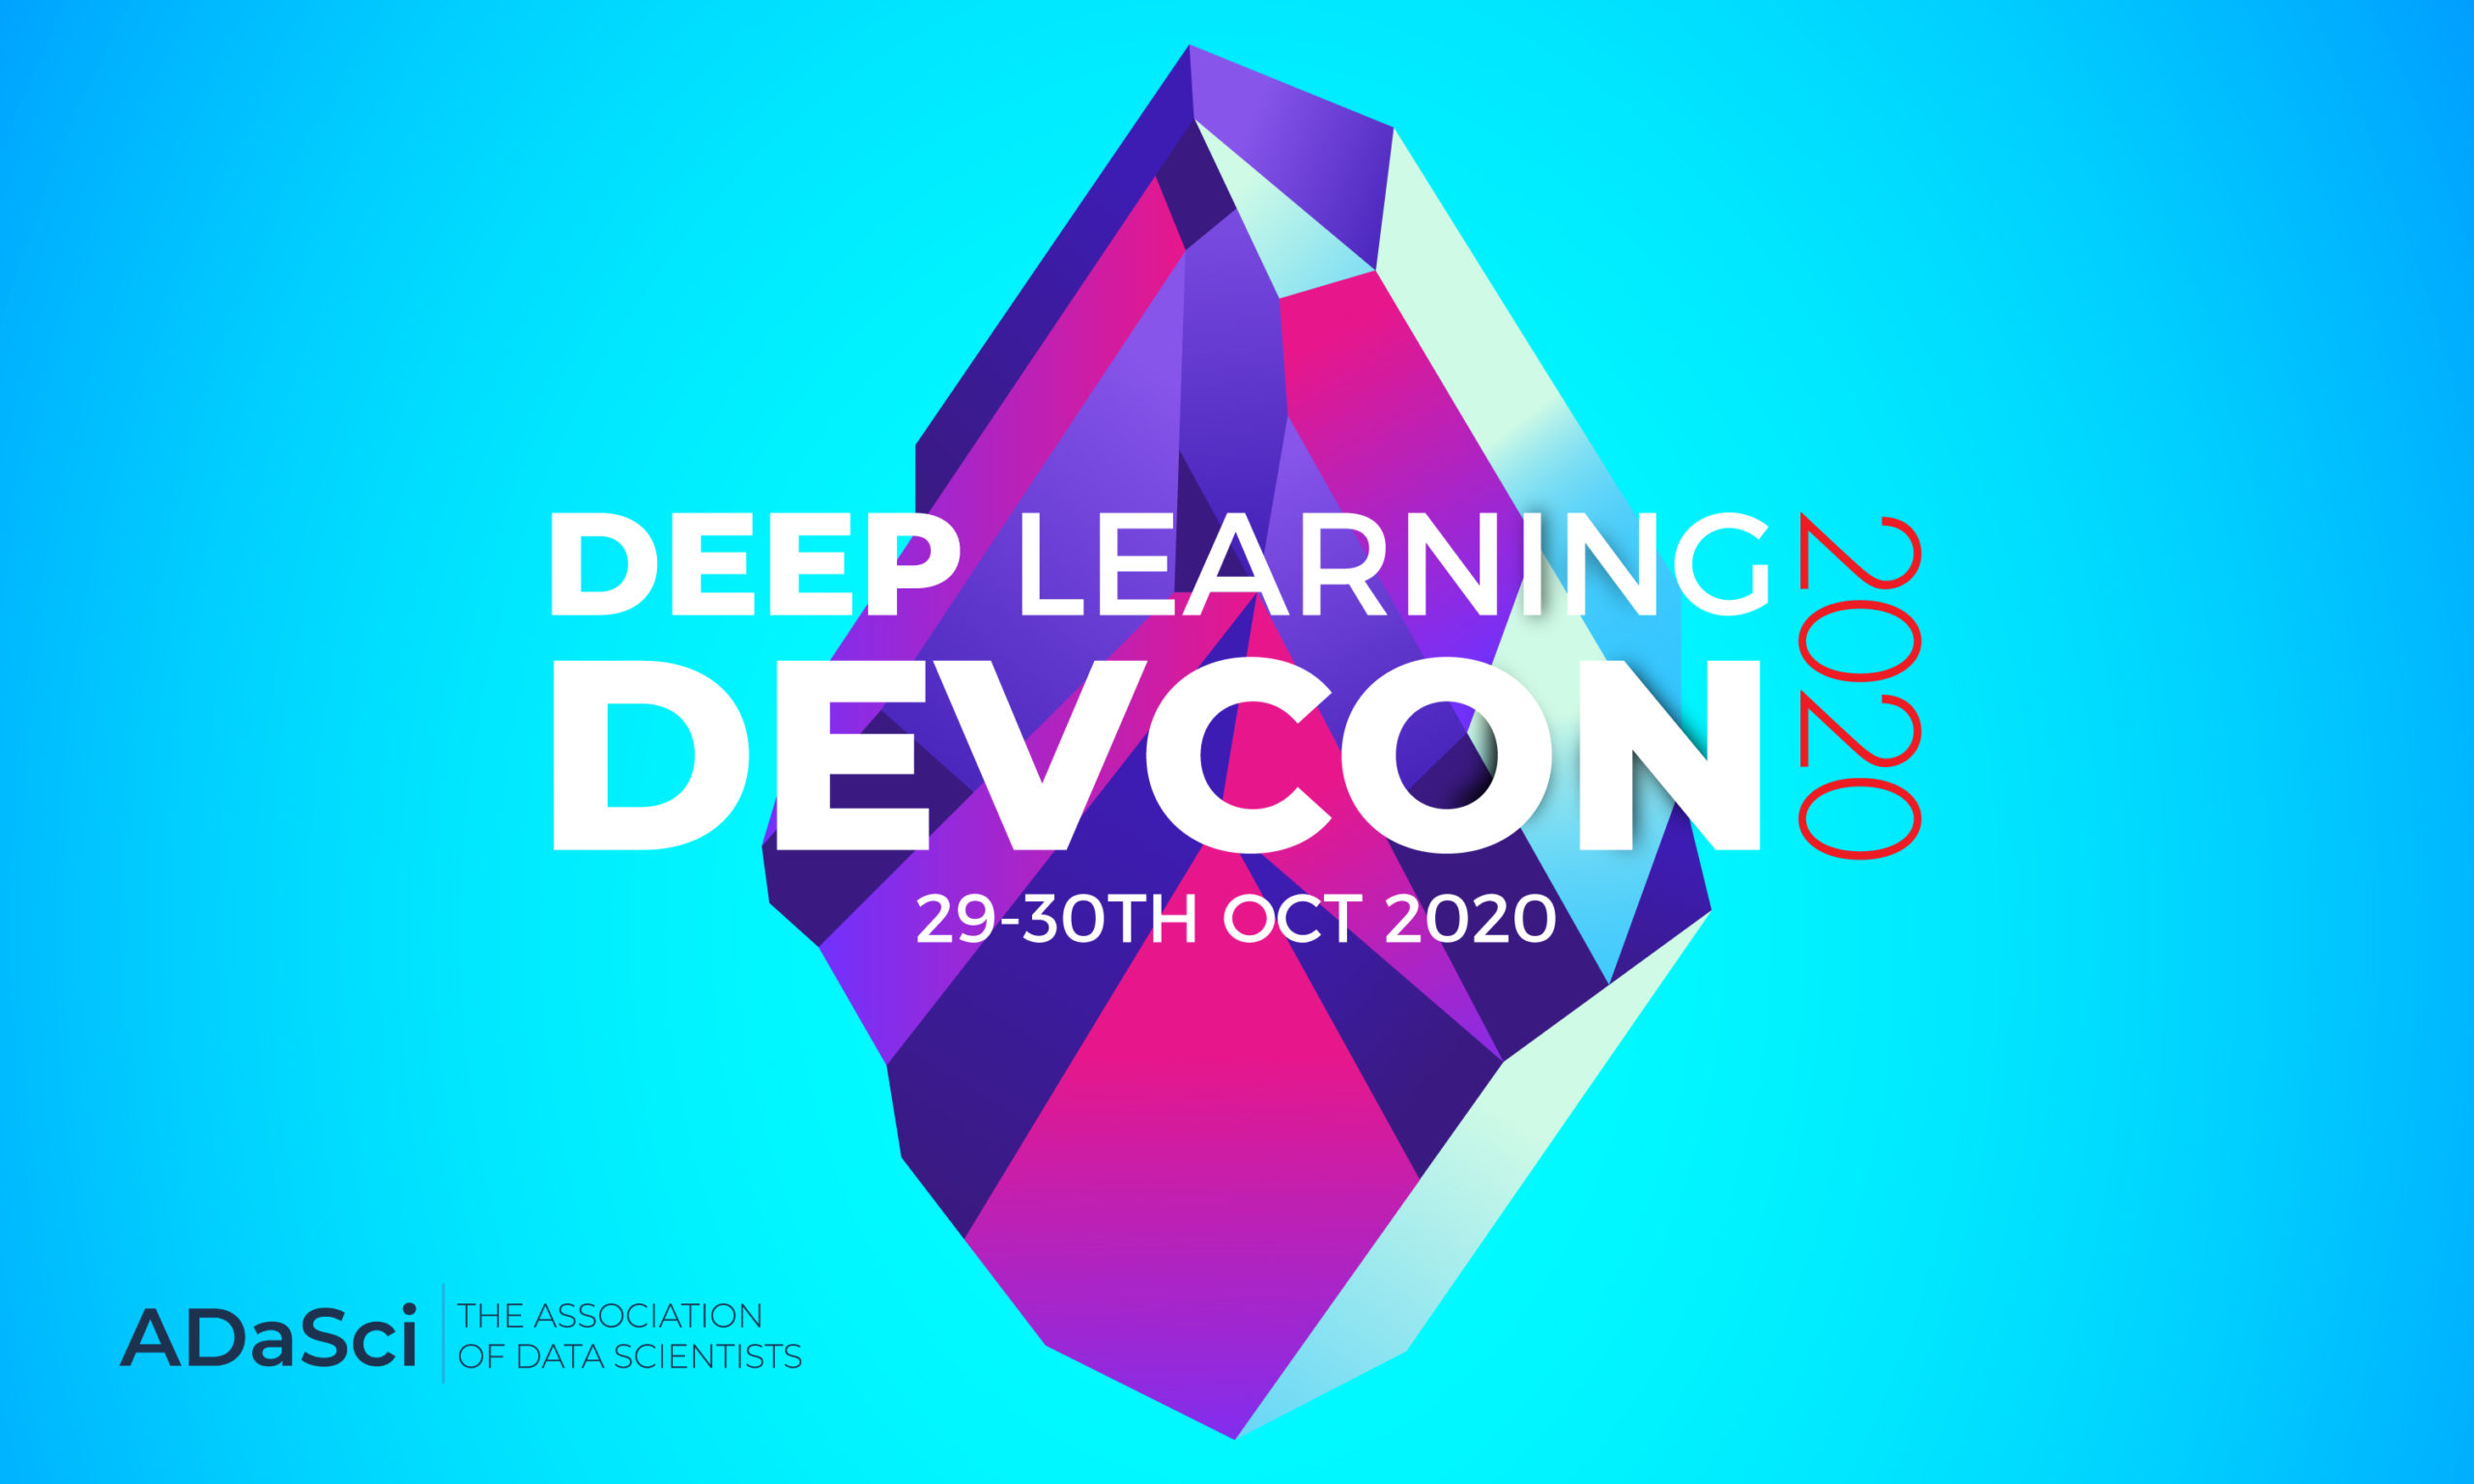 Learning DevCon: Association of Data Scientists Launches